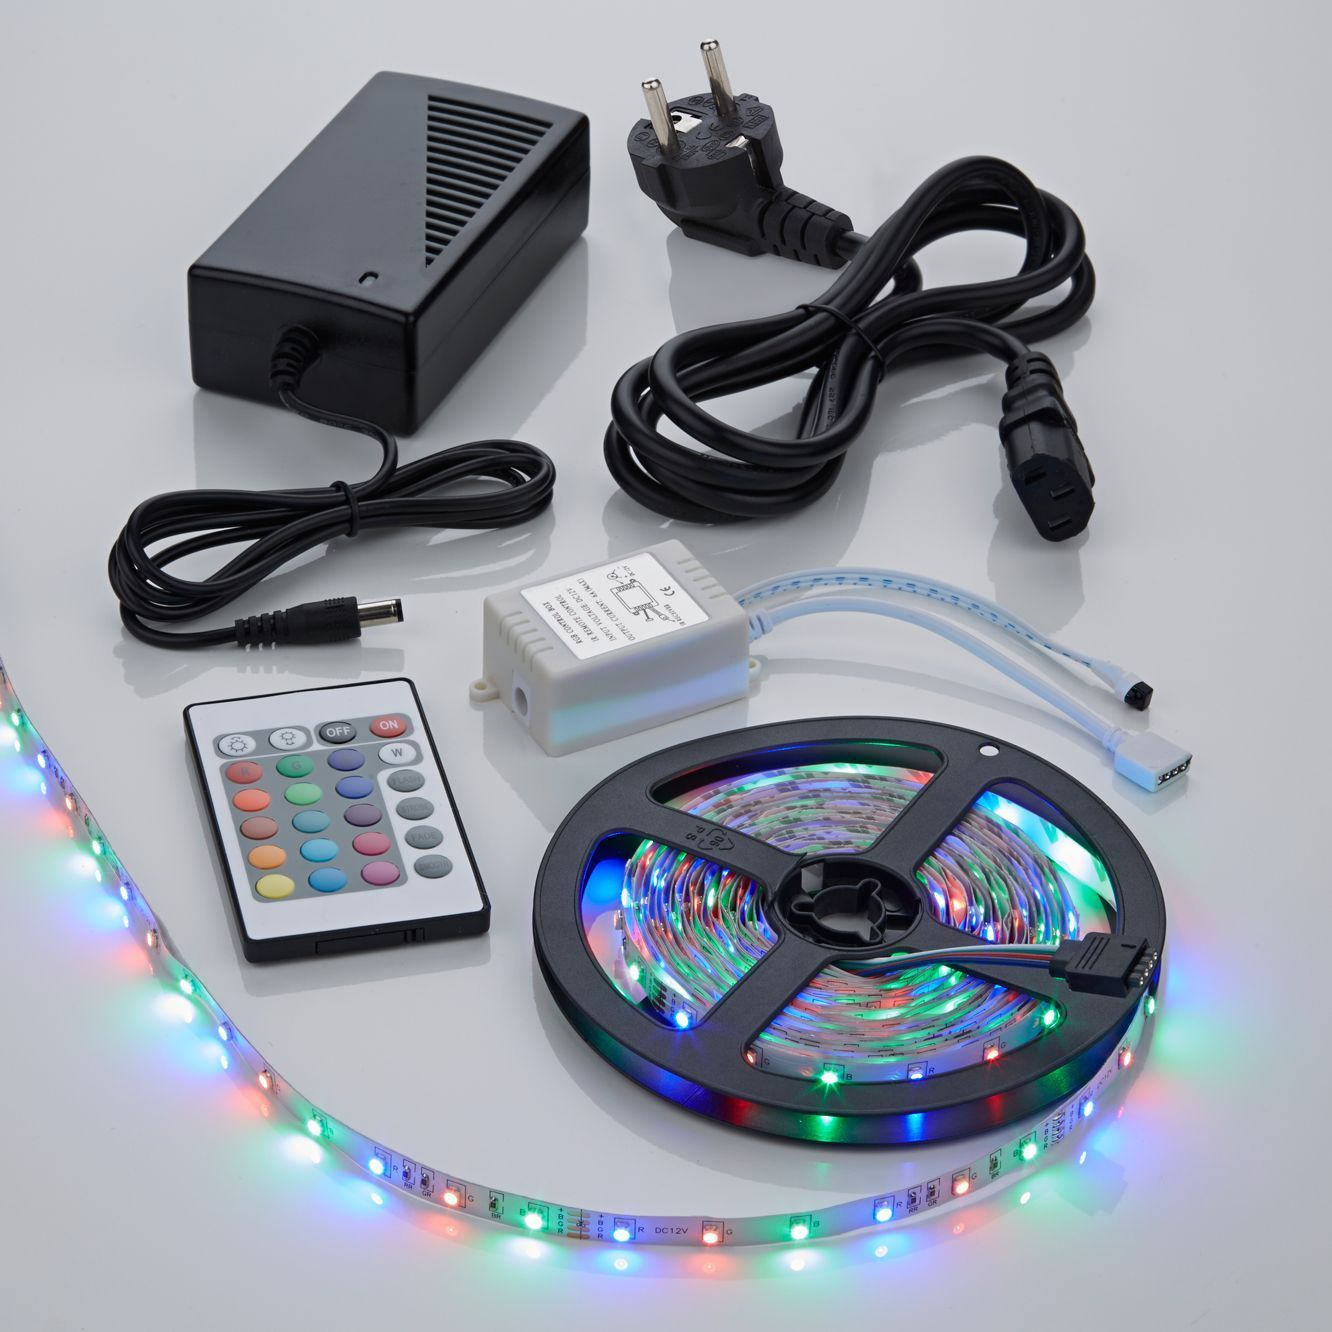 Led Verlichting Strip 30 Meter Biard Ip20 3528 Rgb Led Strip Verlichting Incl Driver, Ir